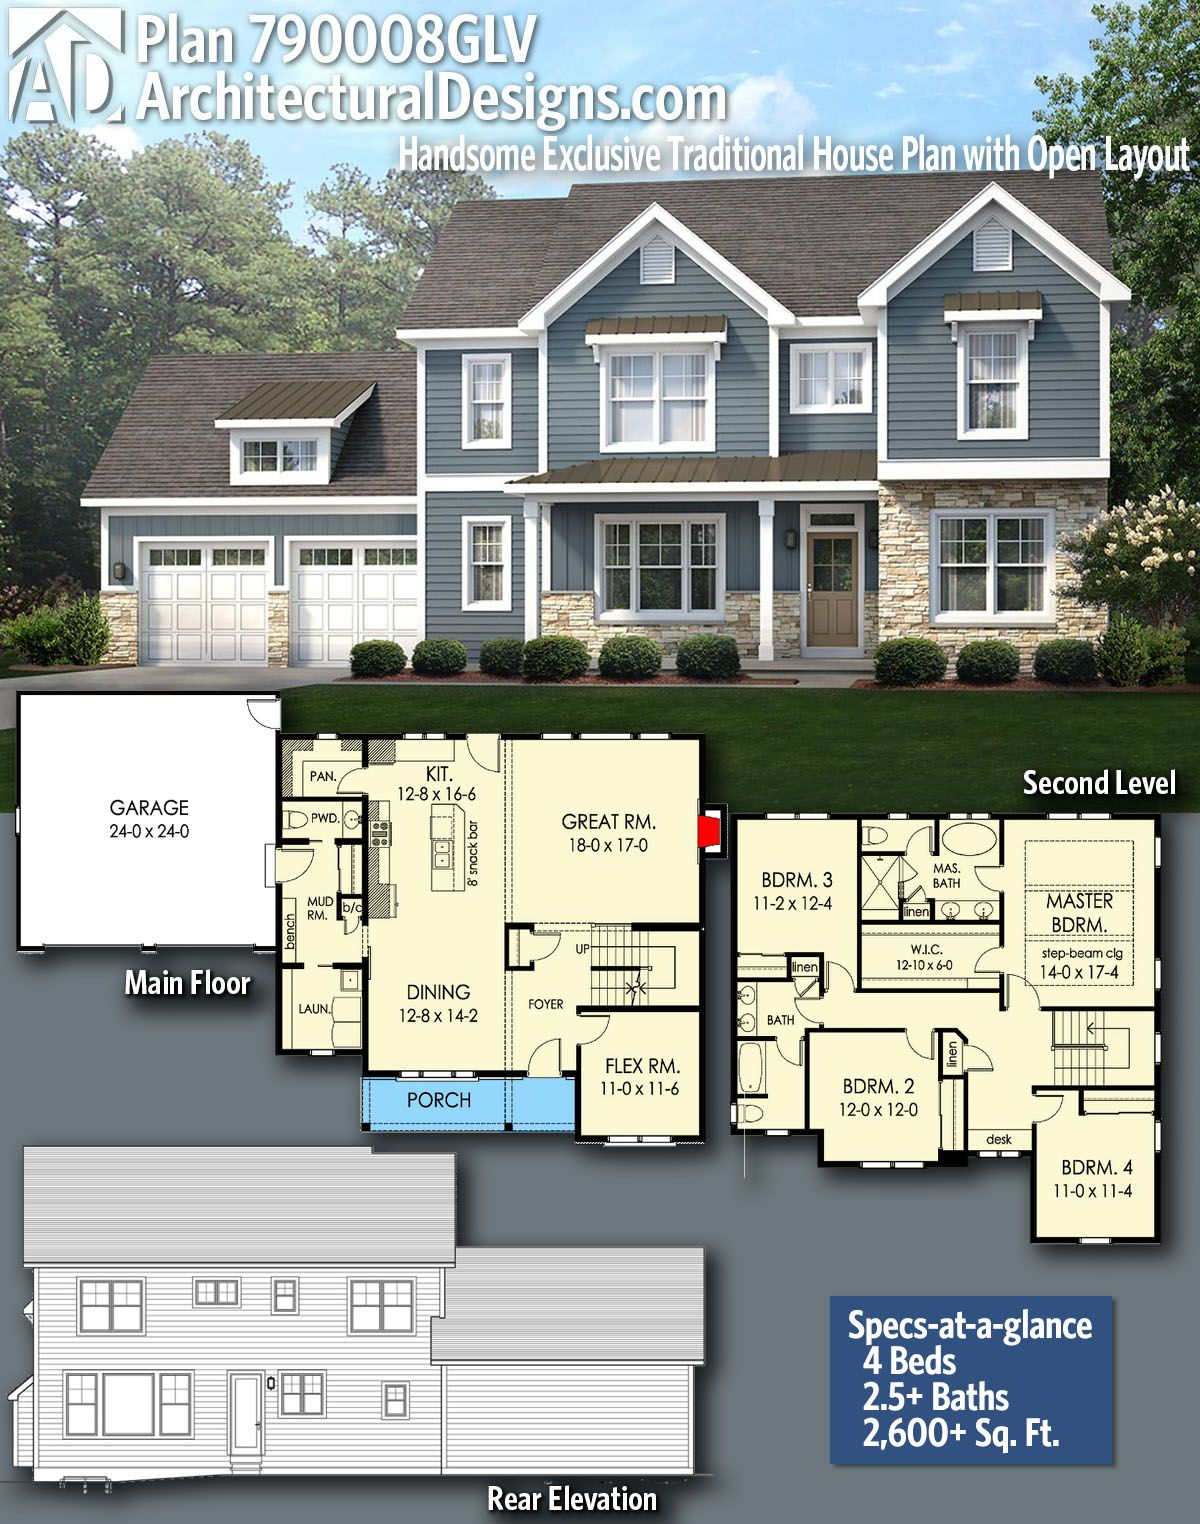 Plan 790008glv Handsome Exclusive Traditional House Plan With